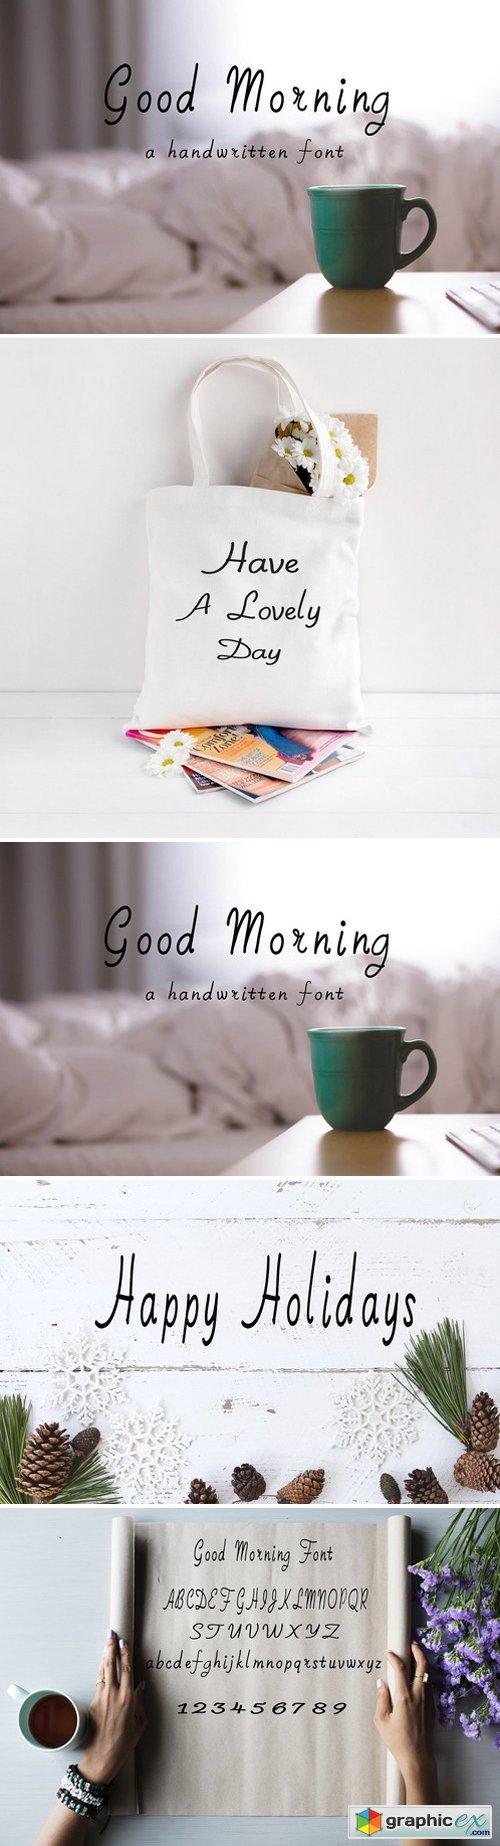 Good Morning Handwritten Font